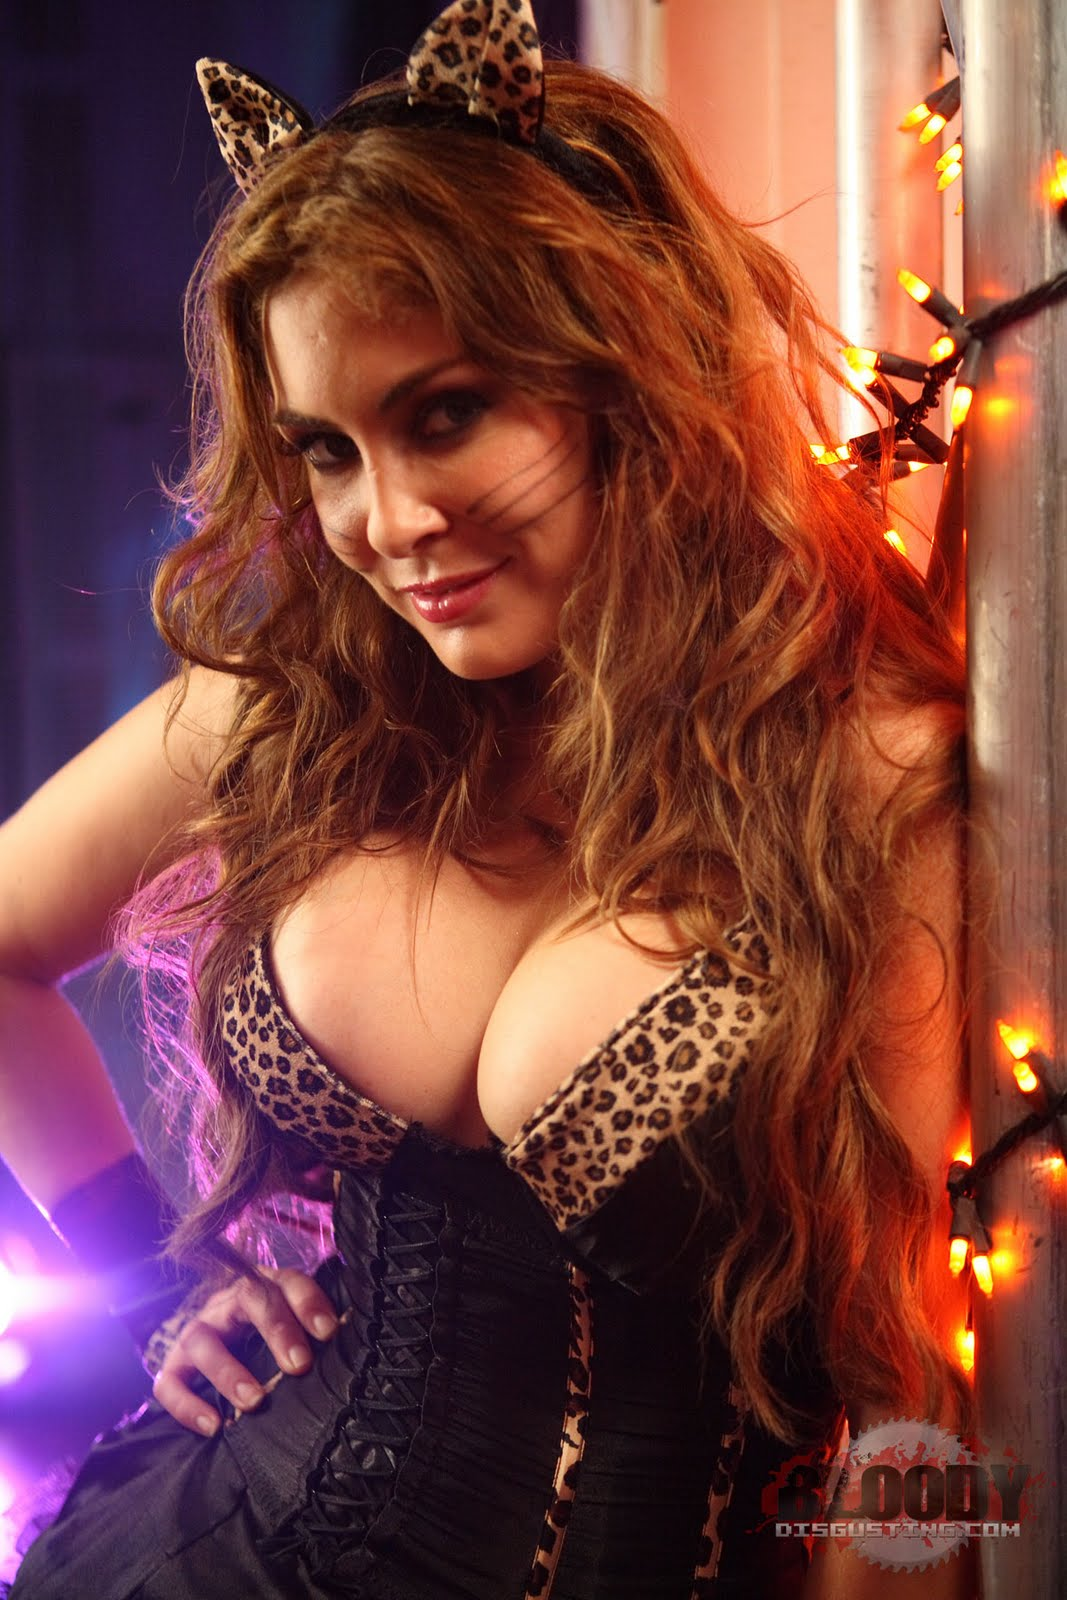 Adult Video Clips Online